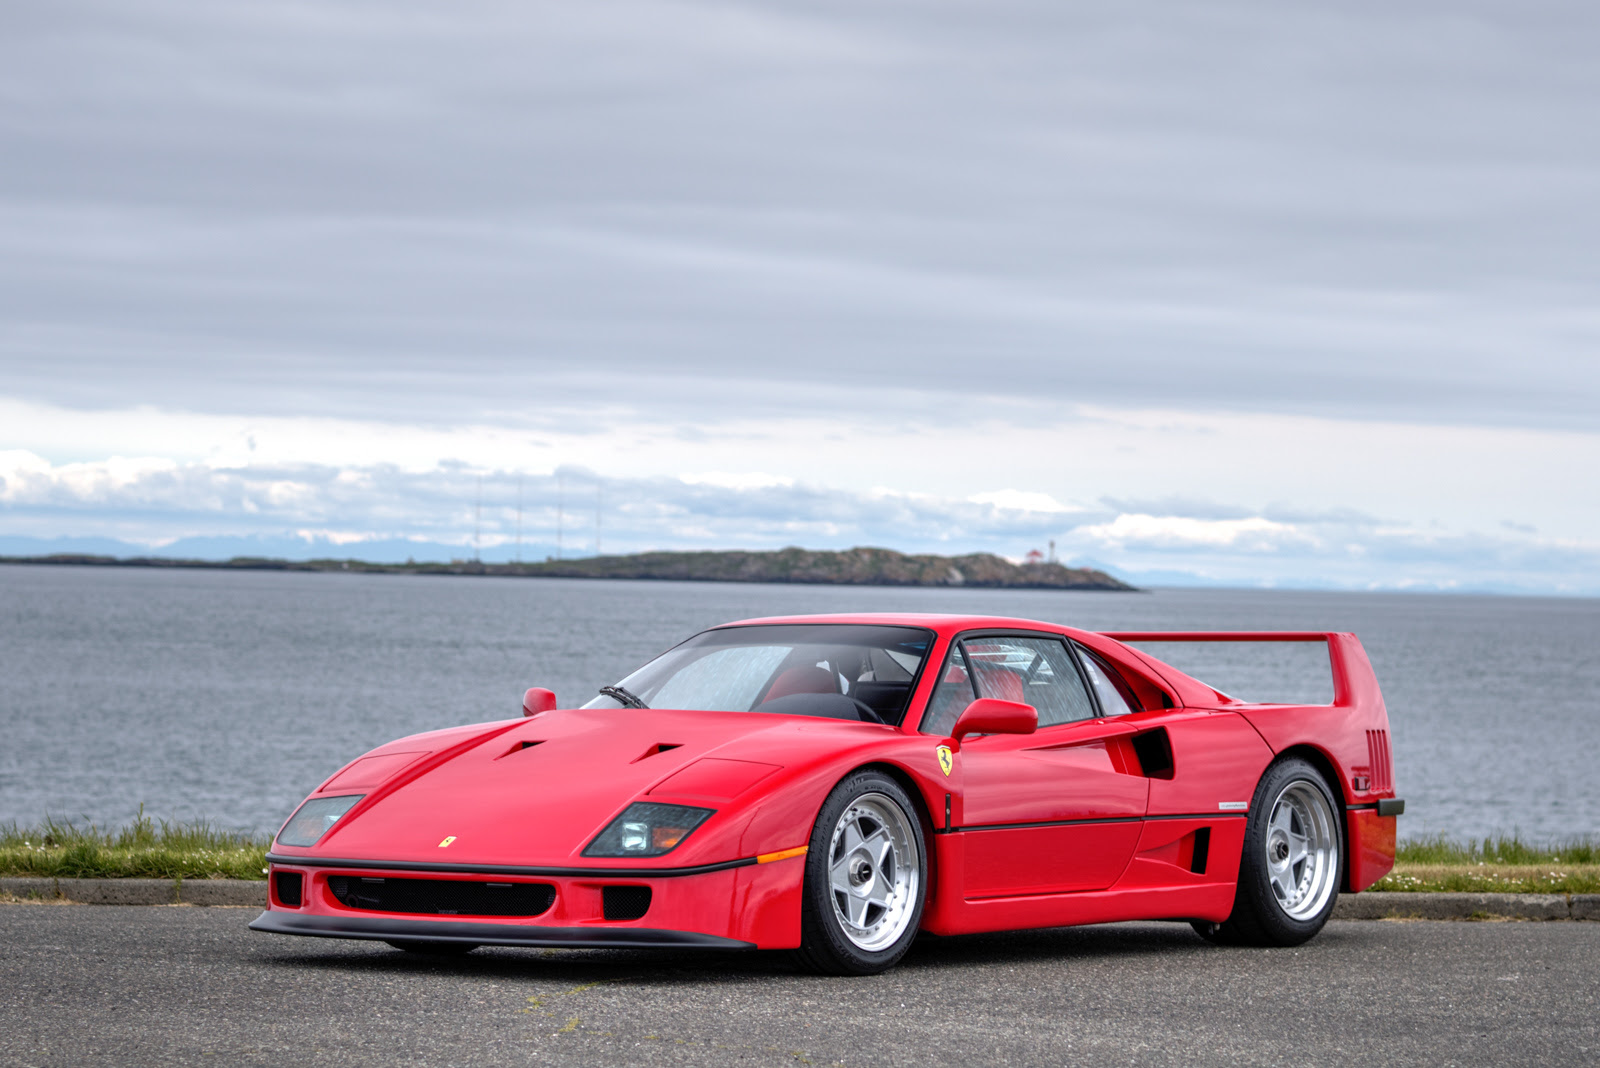 1990 Ferrari F40 Silver Arrow Cars Ltd